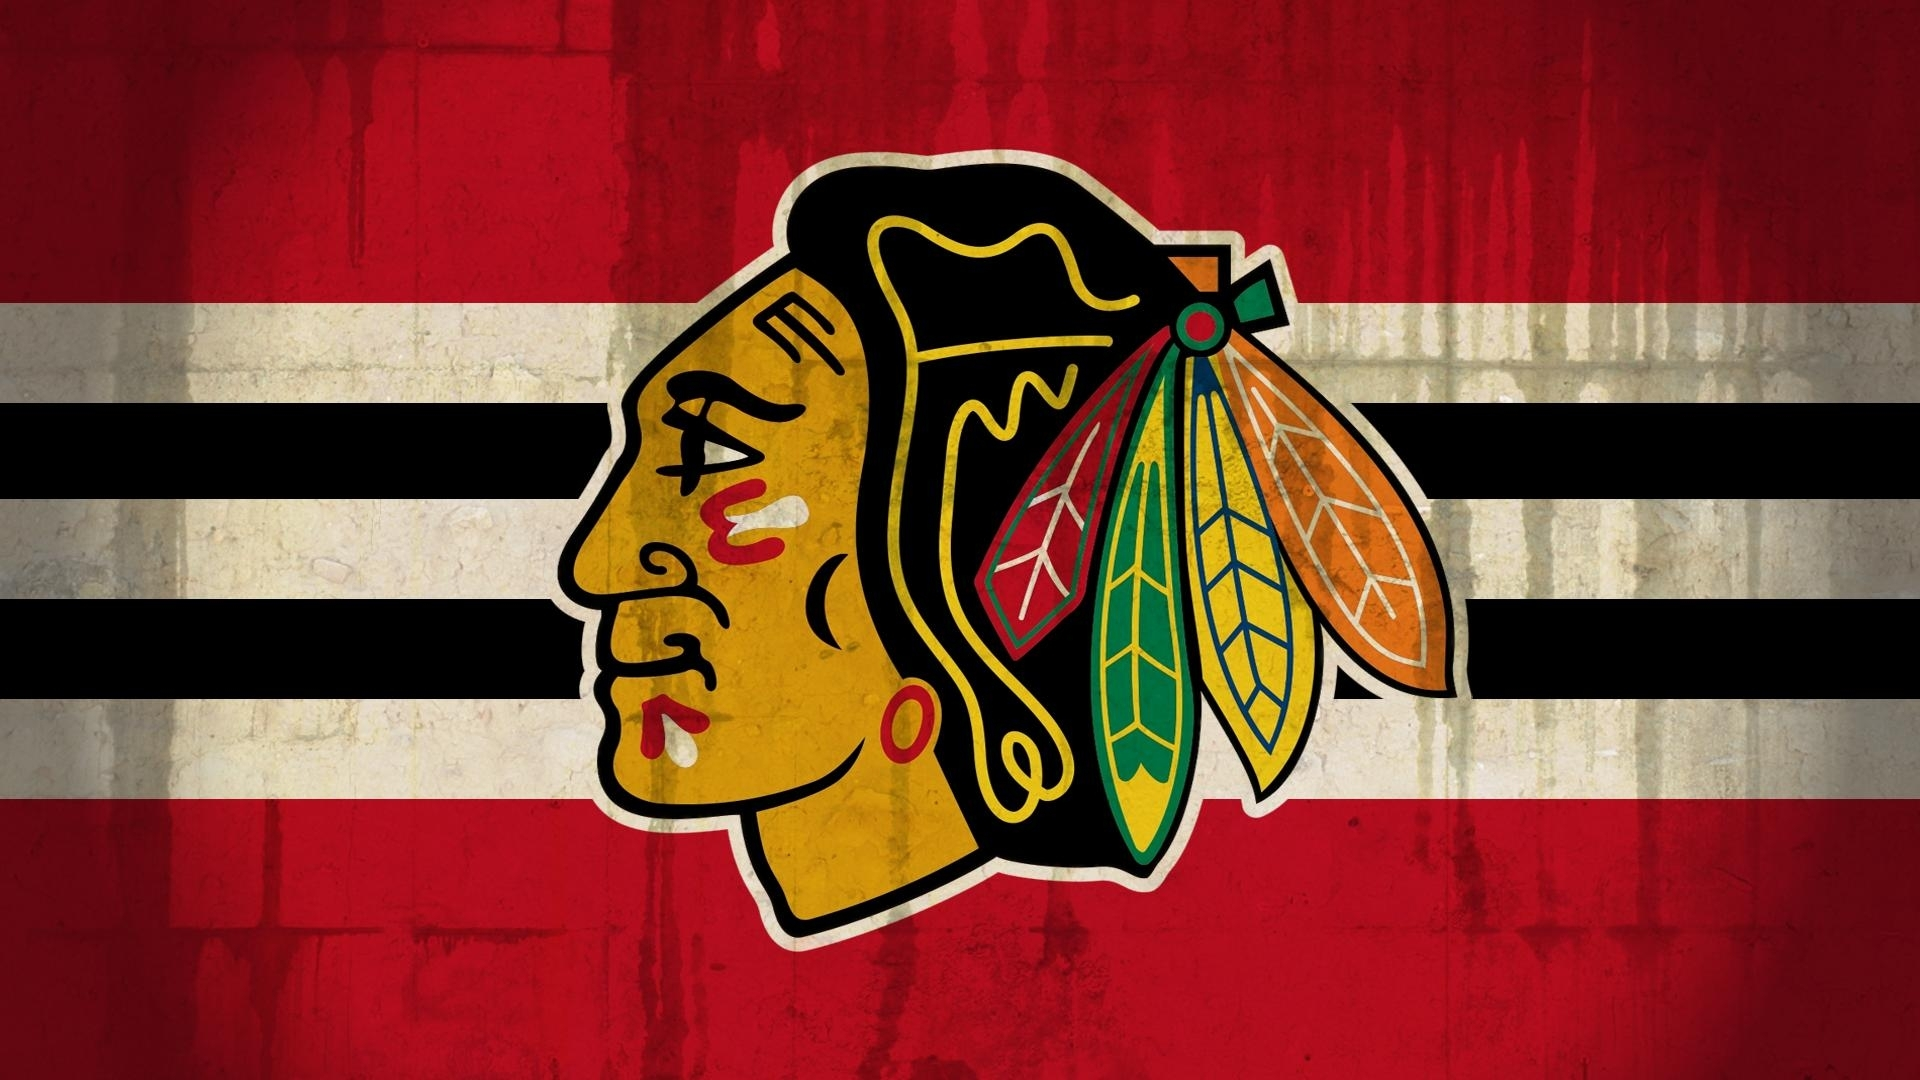 chicago blackhawks hd wallpaper 52493 1920x1080 px ~ hdwallsource